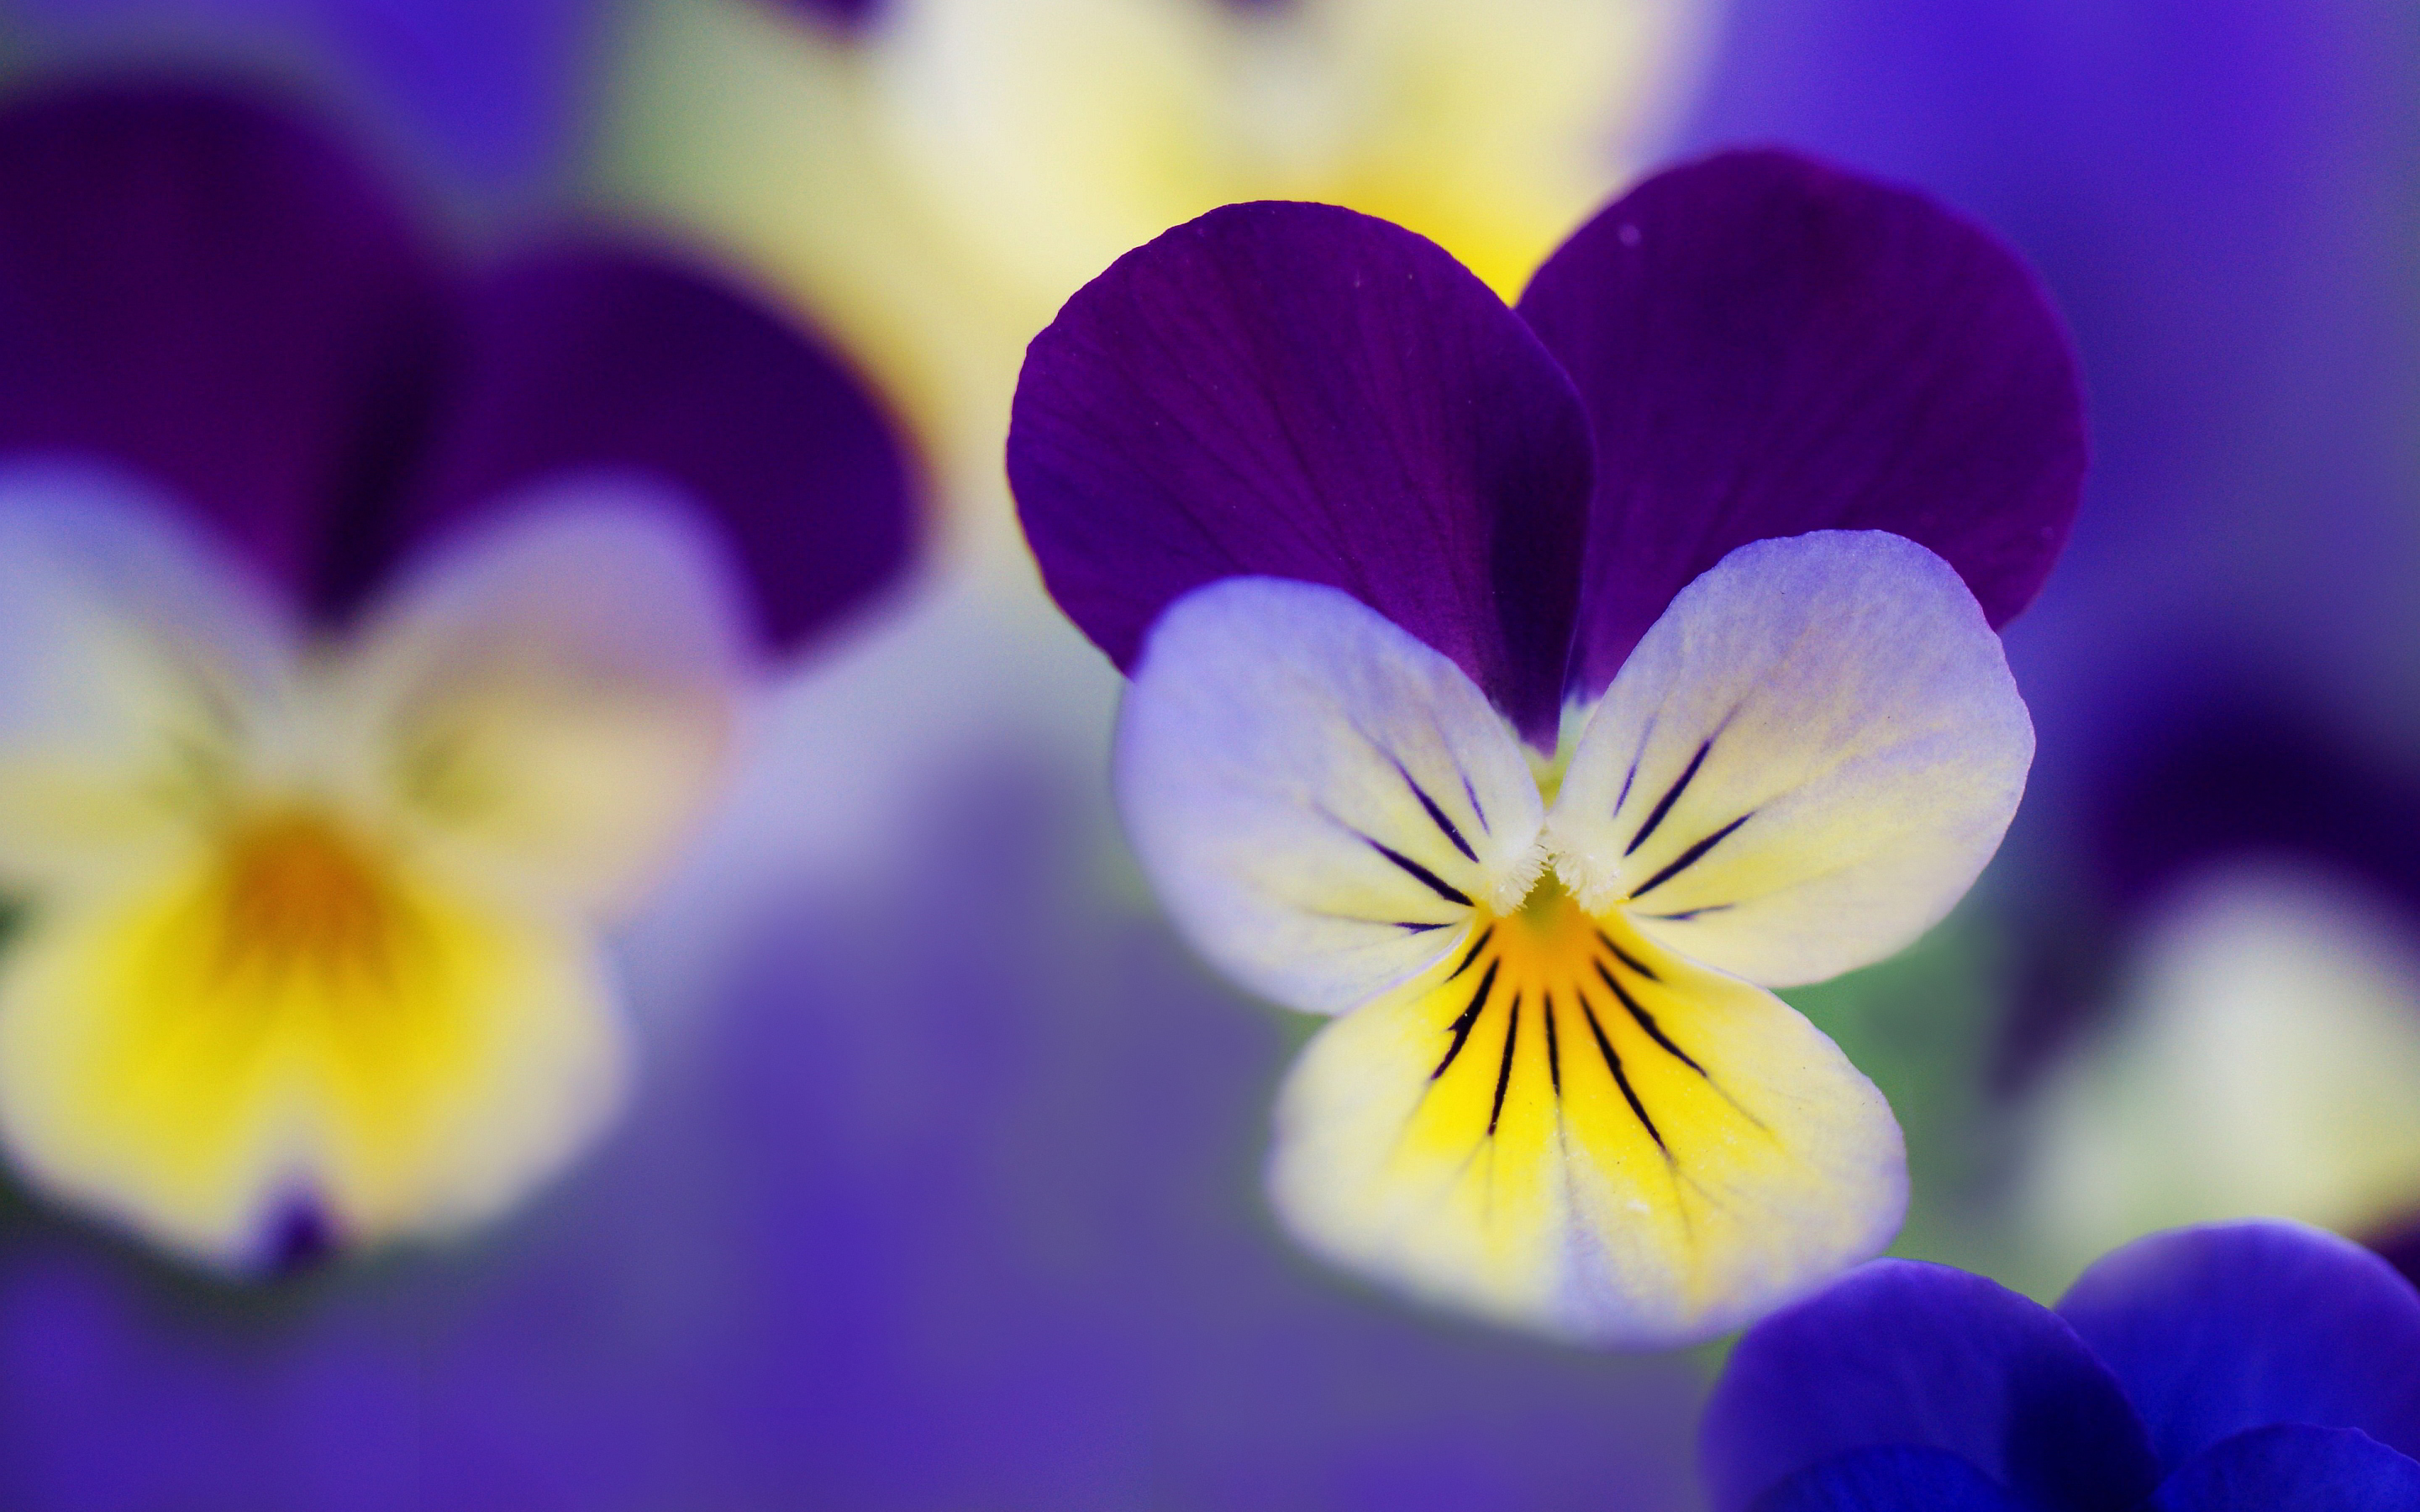 pansies desktop background